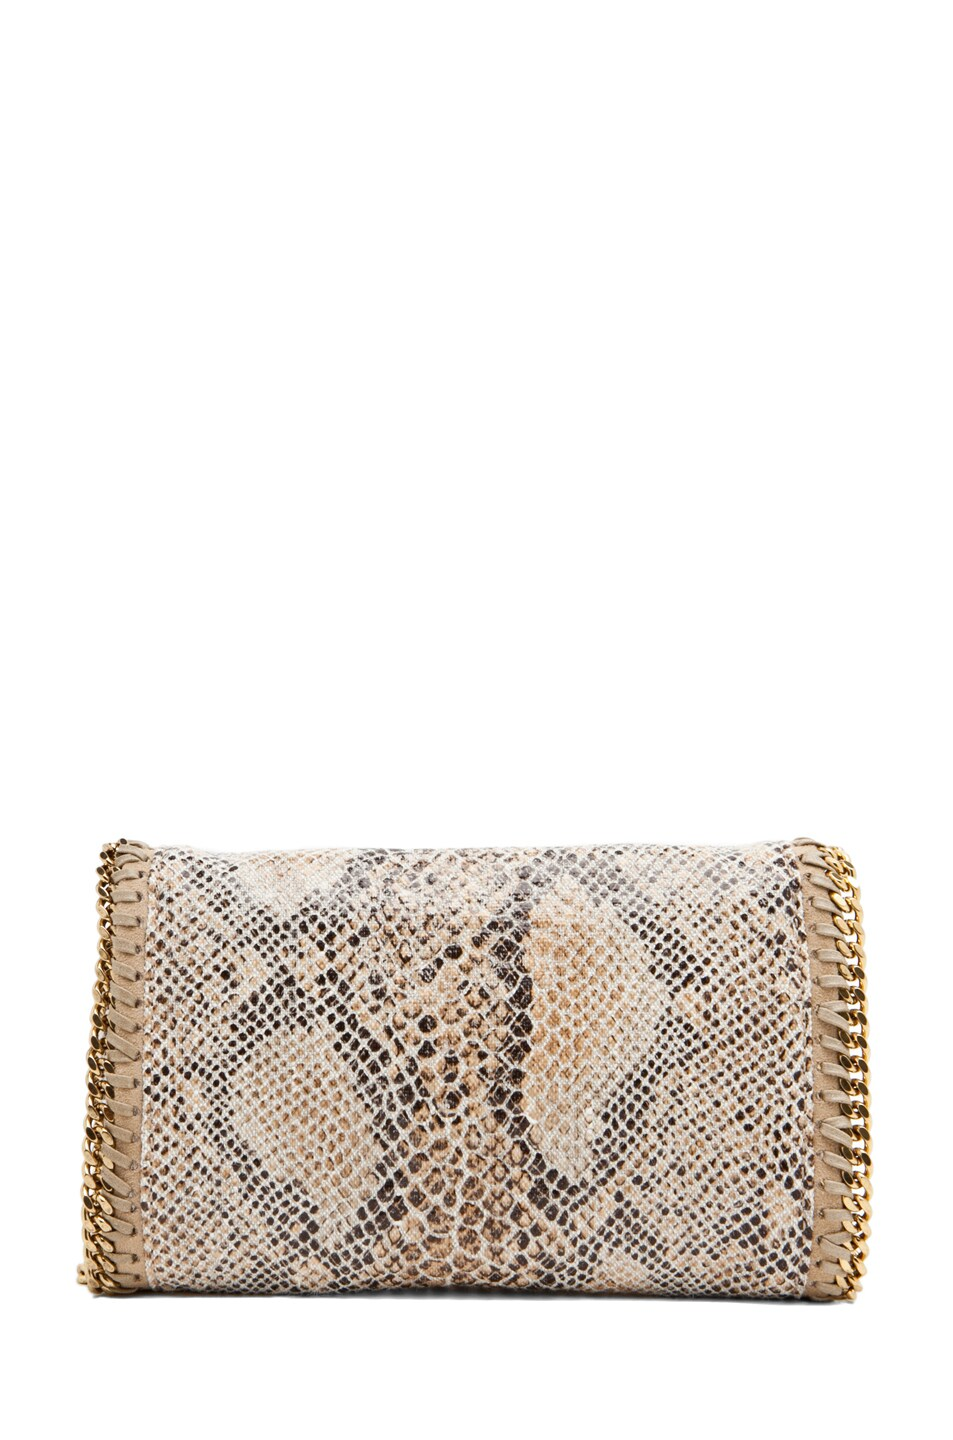 Image 2 of Stella McCartney Eco Snake Clutch in Caramel